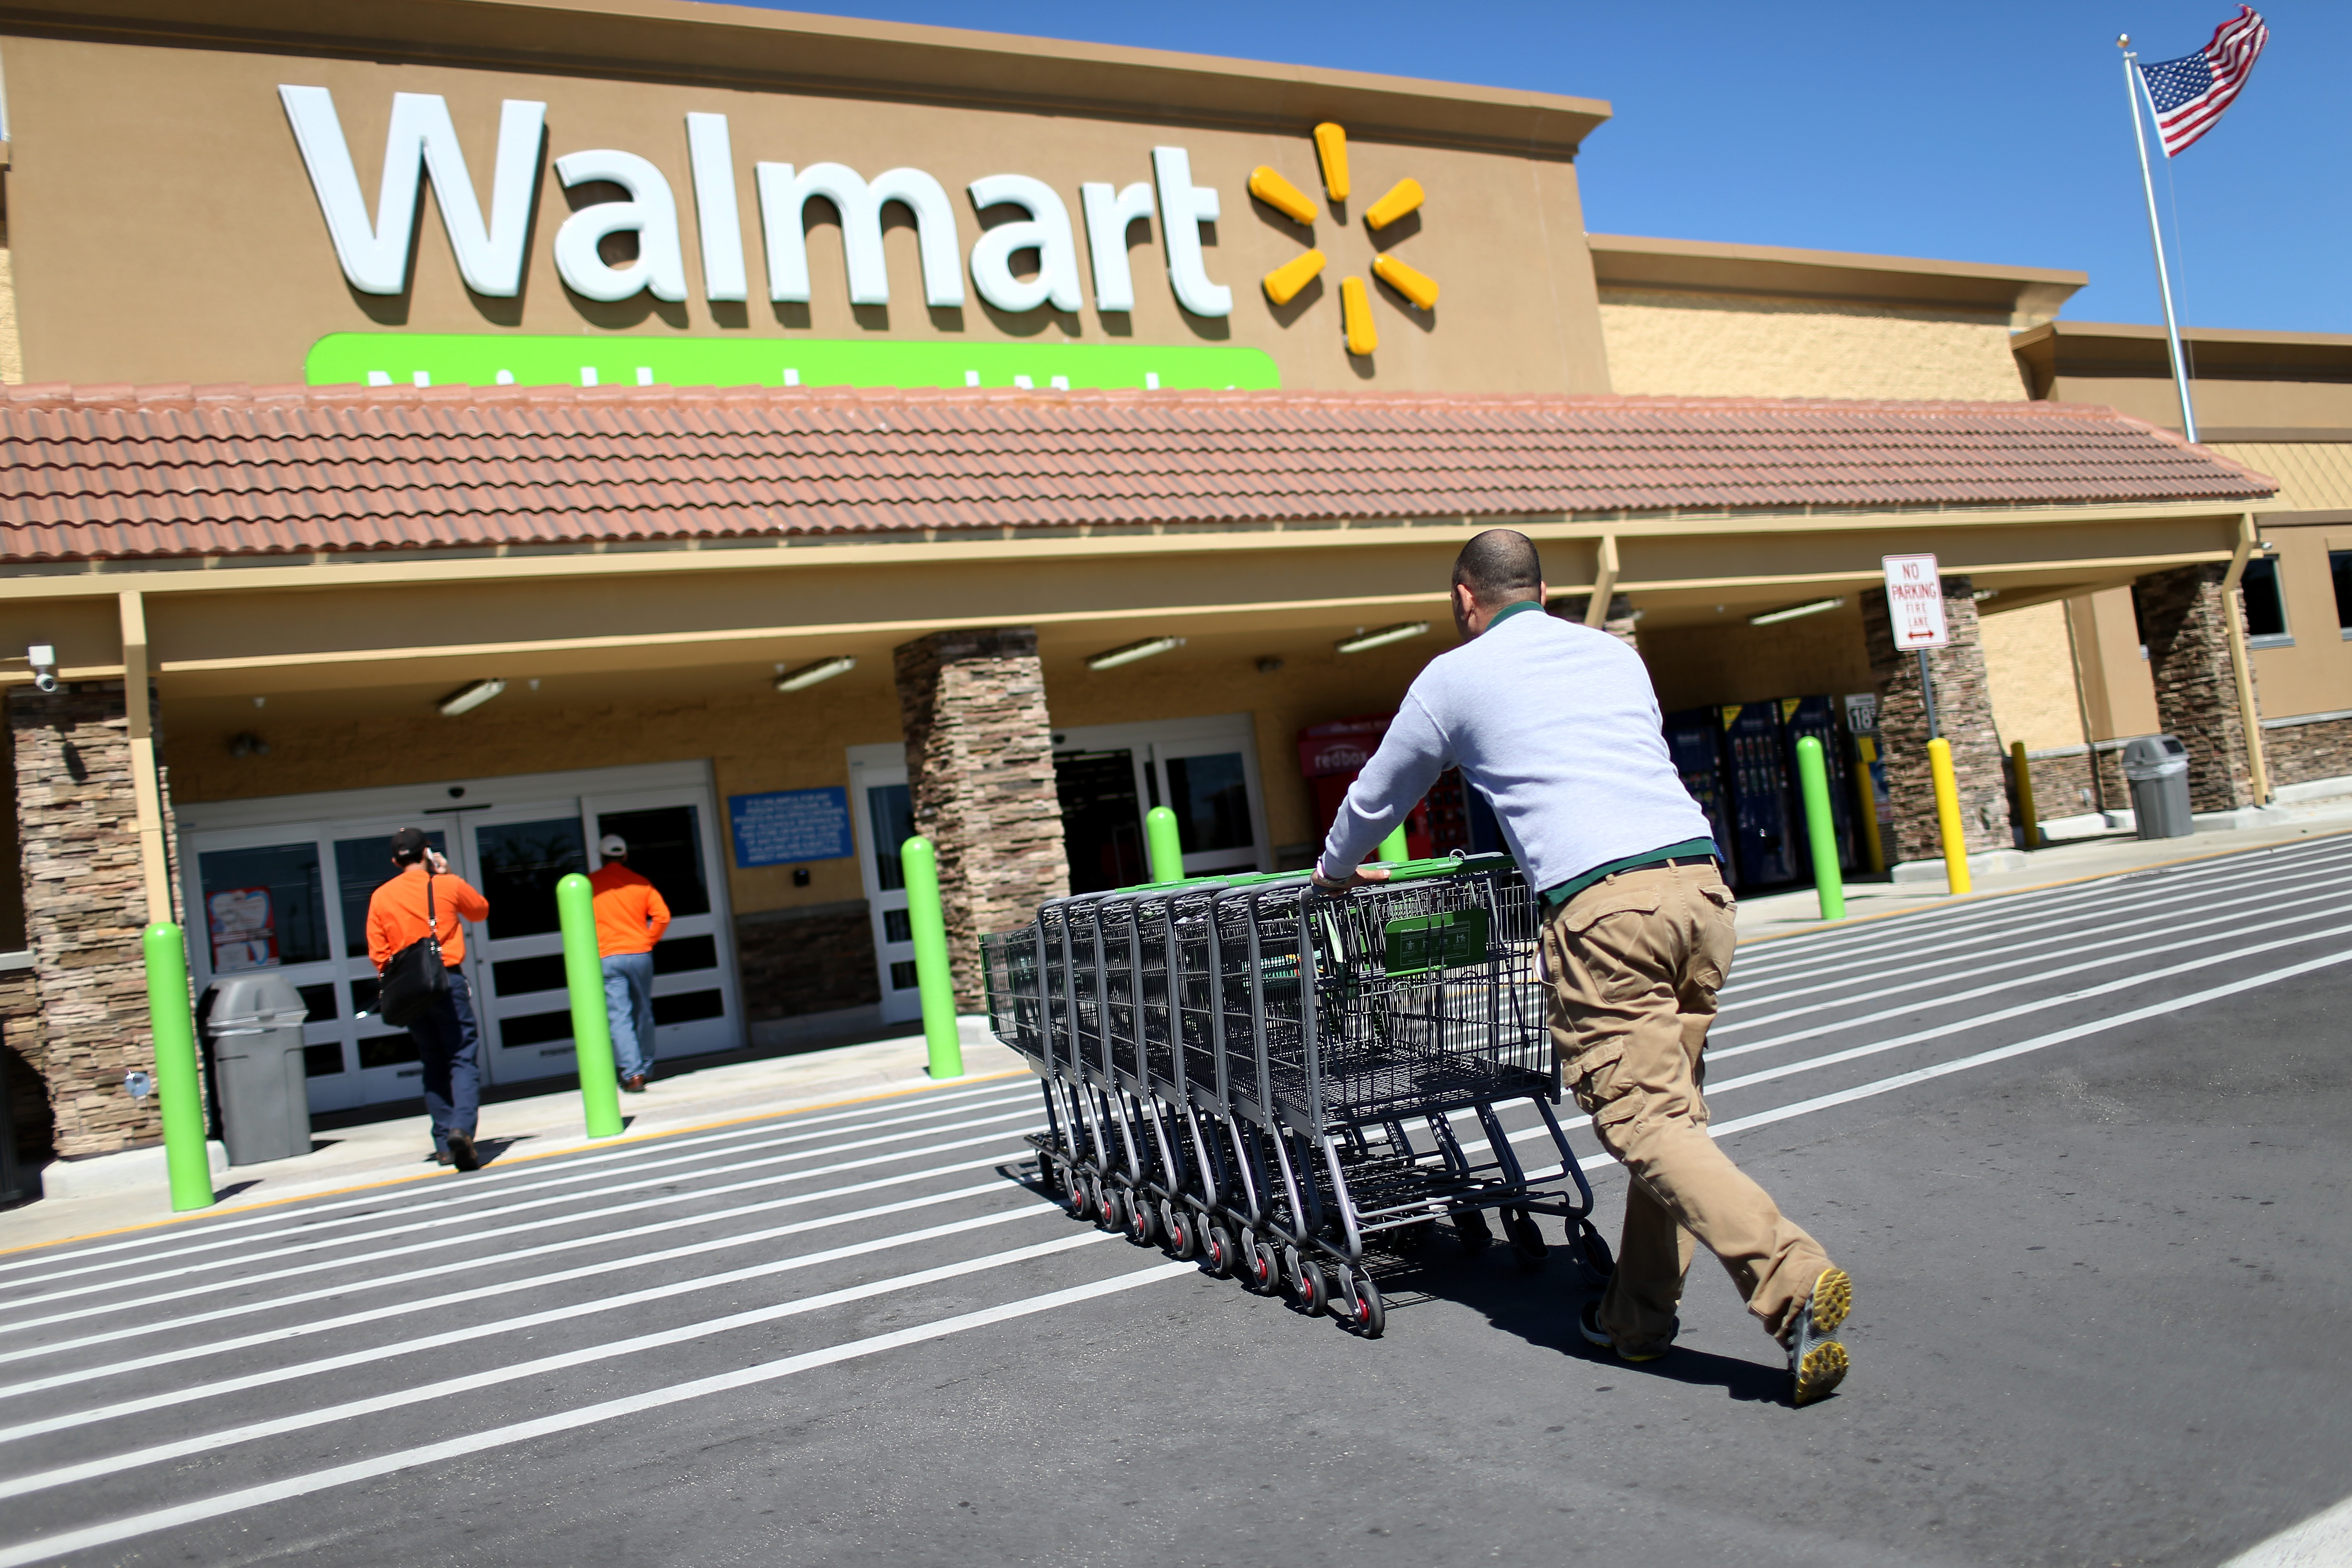 Walmart employee Yurdin Velazquez pushes grocery carts at a Walmart store on February 19, 2015 in Miami, Florida.